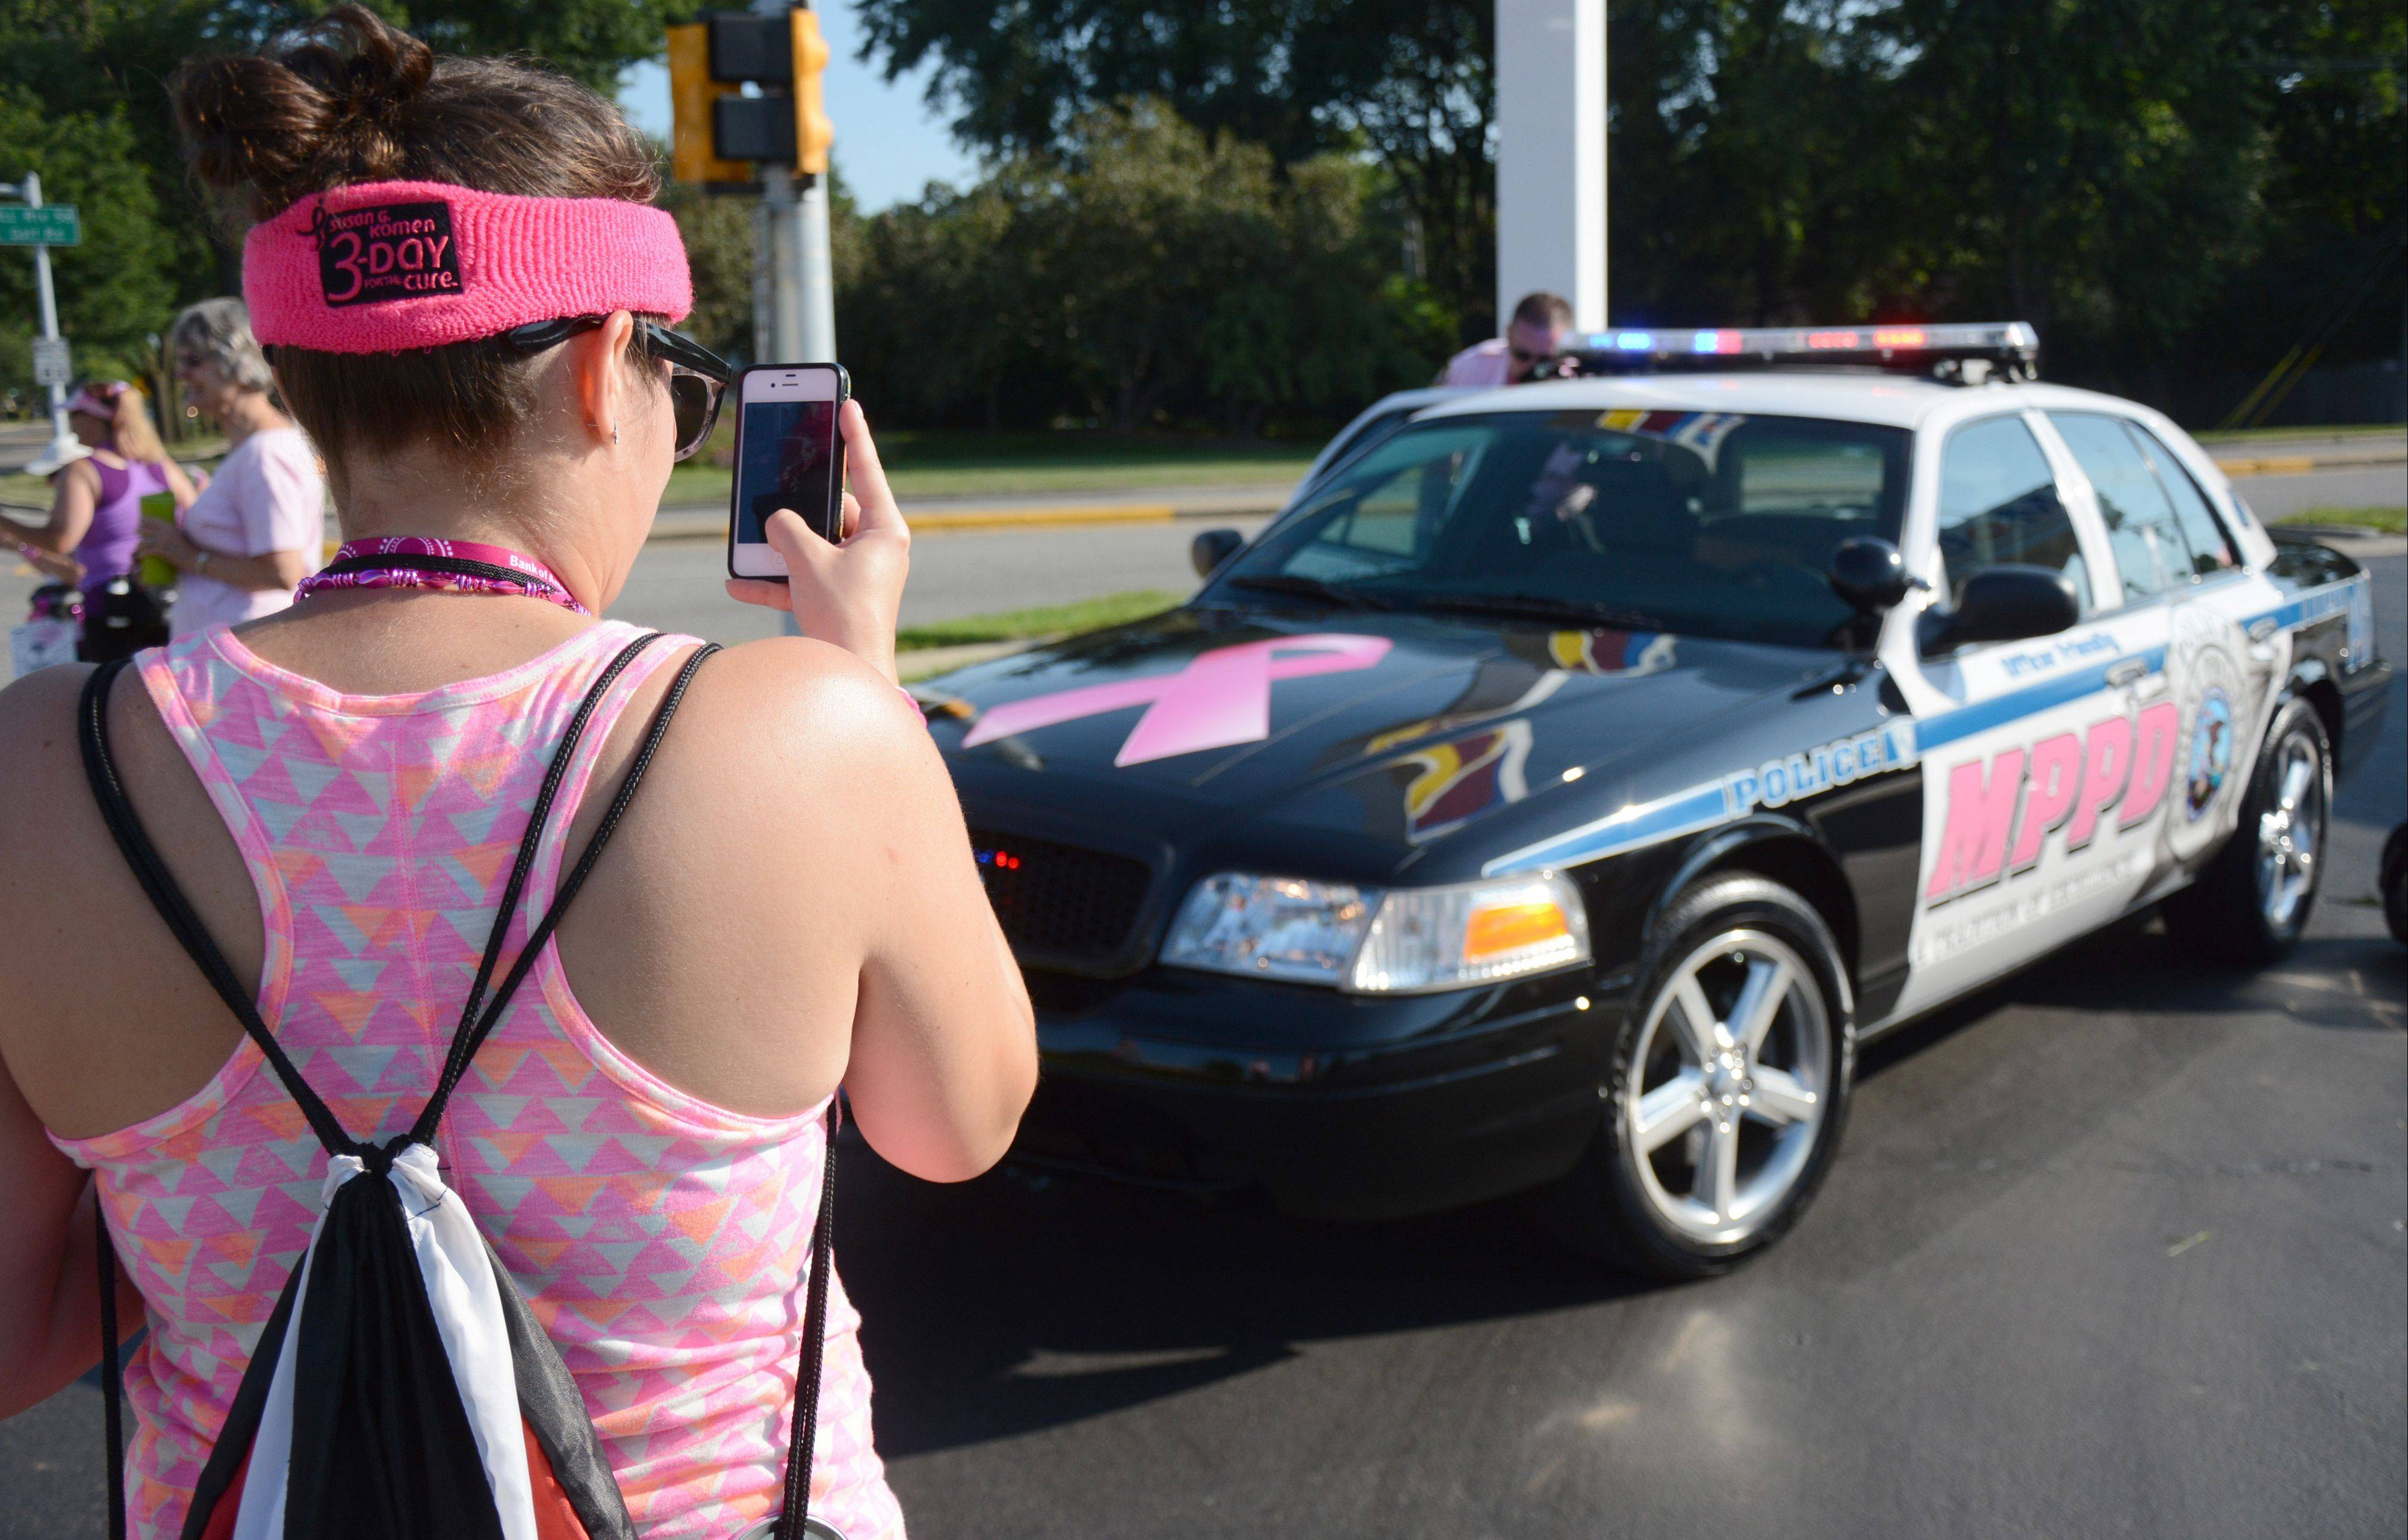 Rebecca Vasques, of Elmhurst, pauses to shoot a picture of a Mount Prospect police cruiser that was decked out in pink Saturday during the second day of the Chicago Breast Cancer Komen 3-Day Walk in Mount Prospect. Vasquez is walking for her mother, a breast cancer survivor.